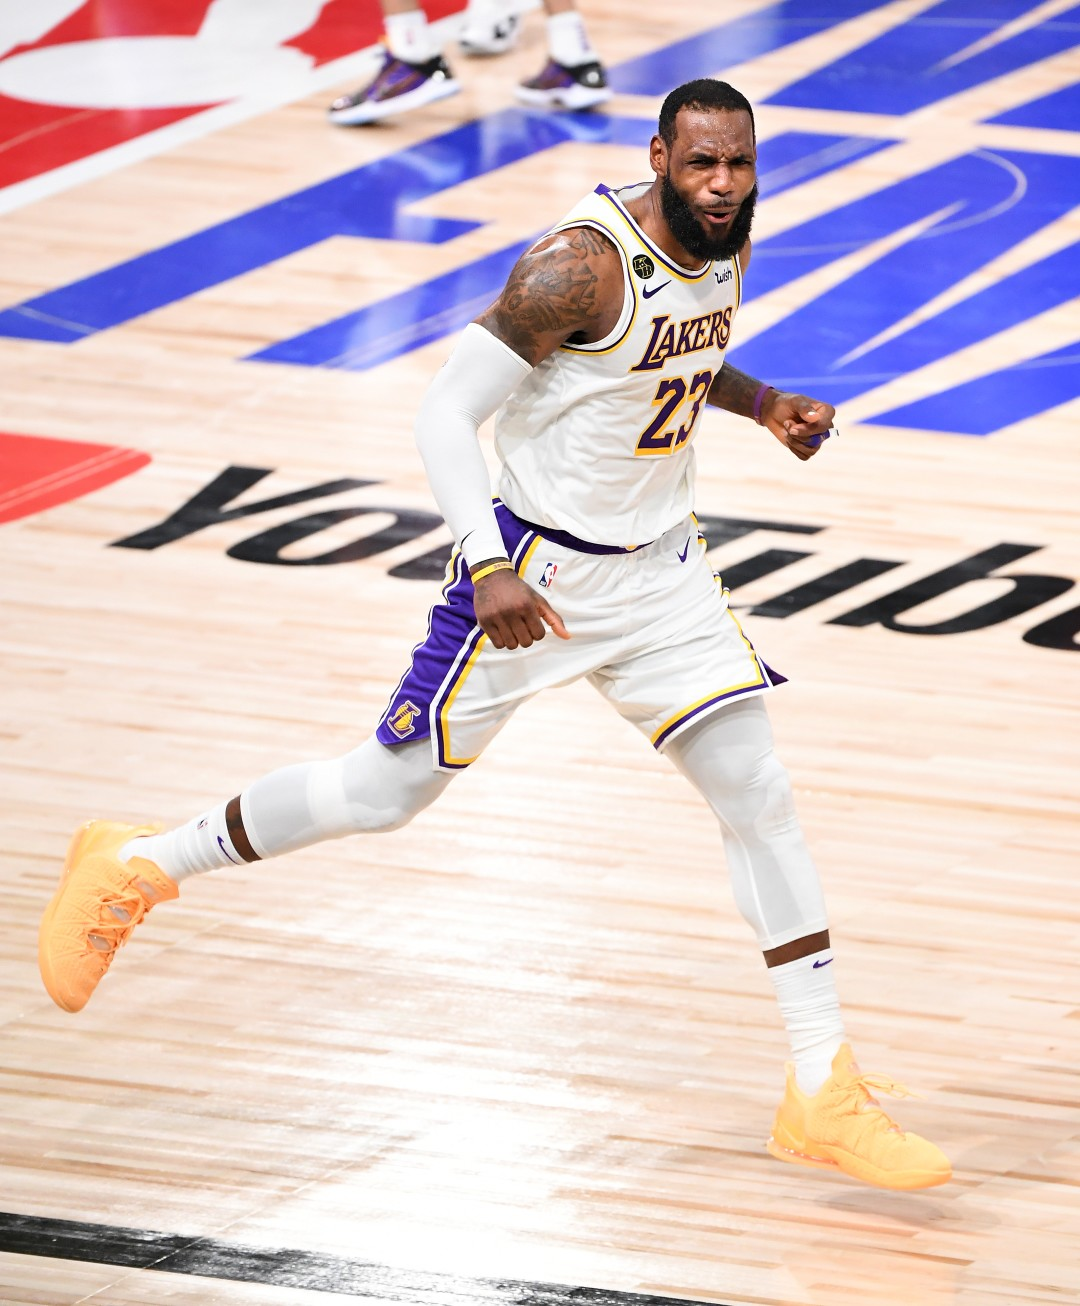 Lakers forward LeBron James celebrates a three-pointer against the Miami Heat in Game 6 of the NBA Finals on Sunday.